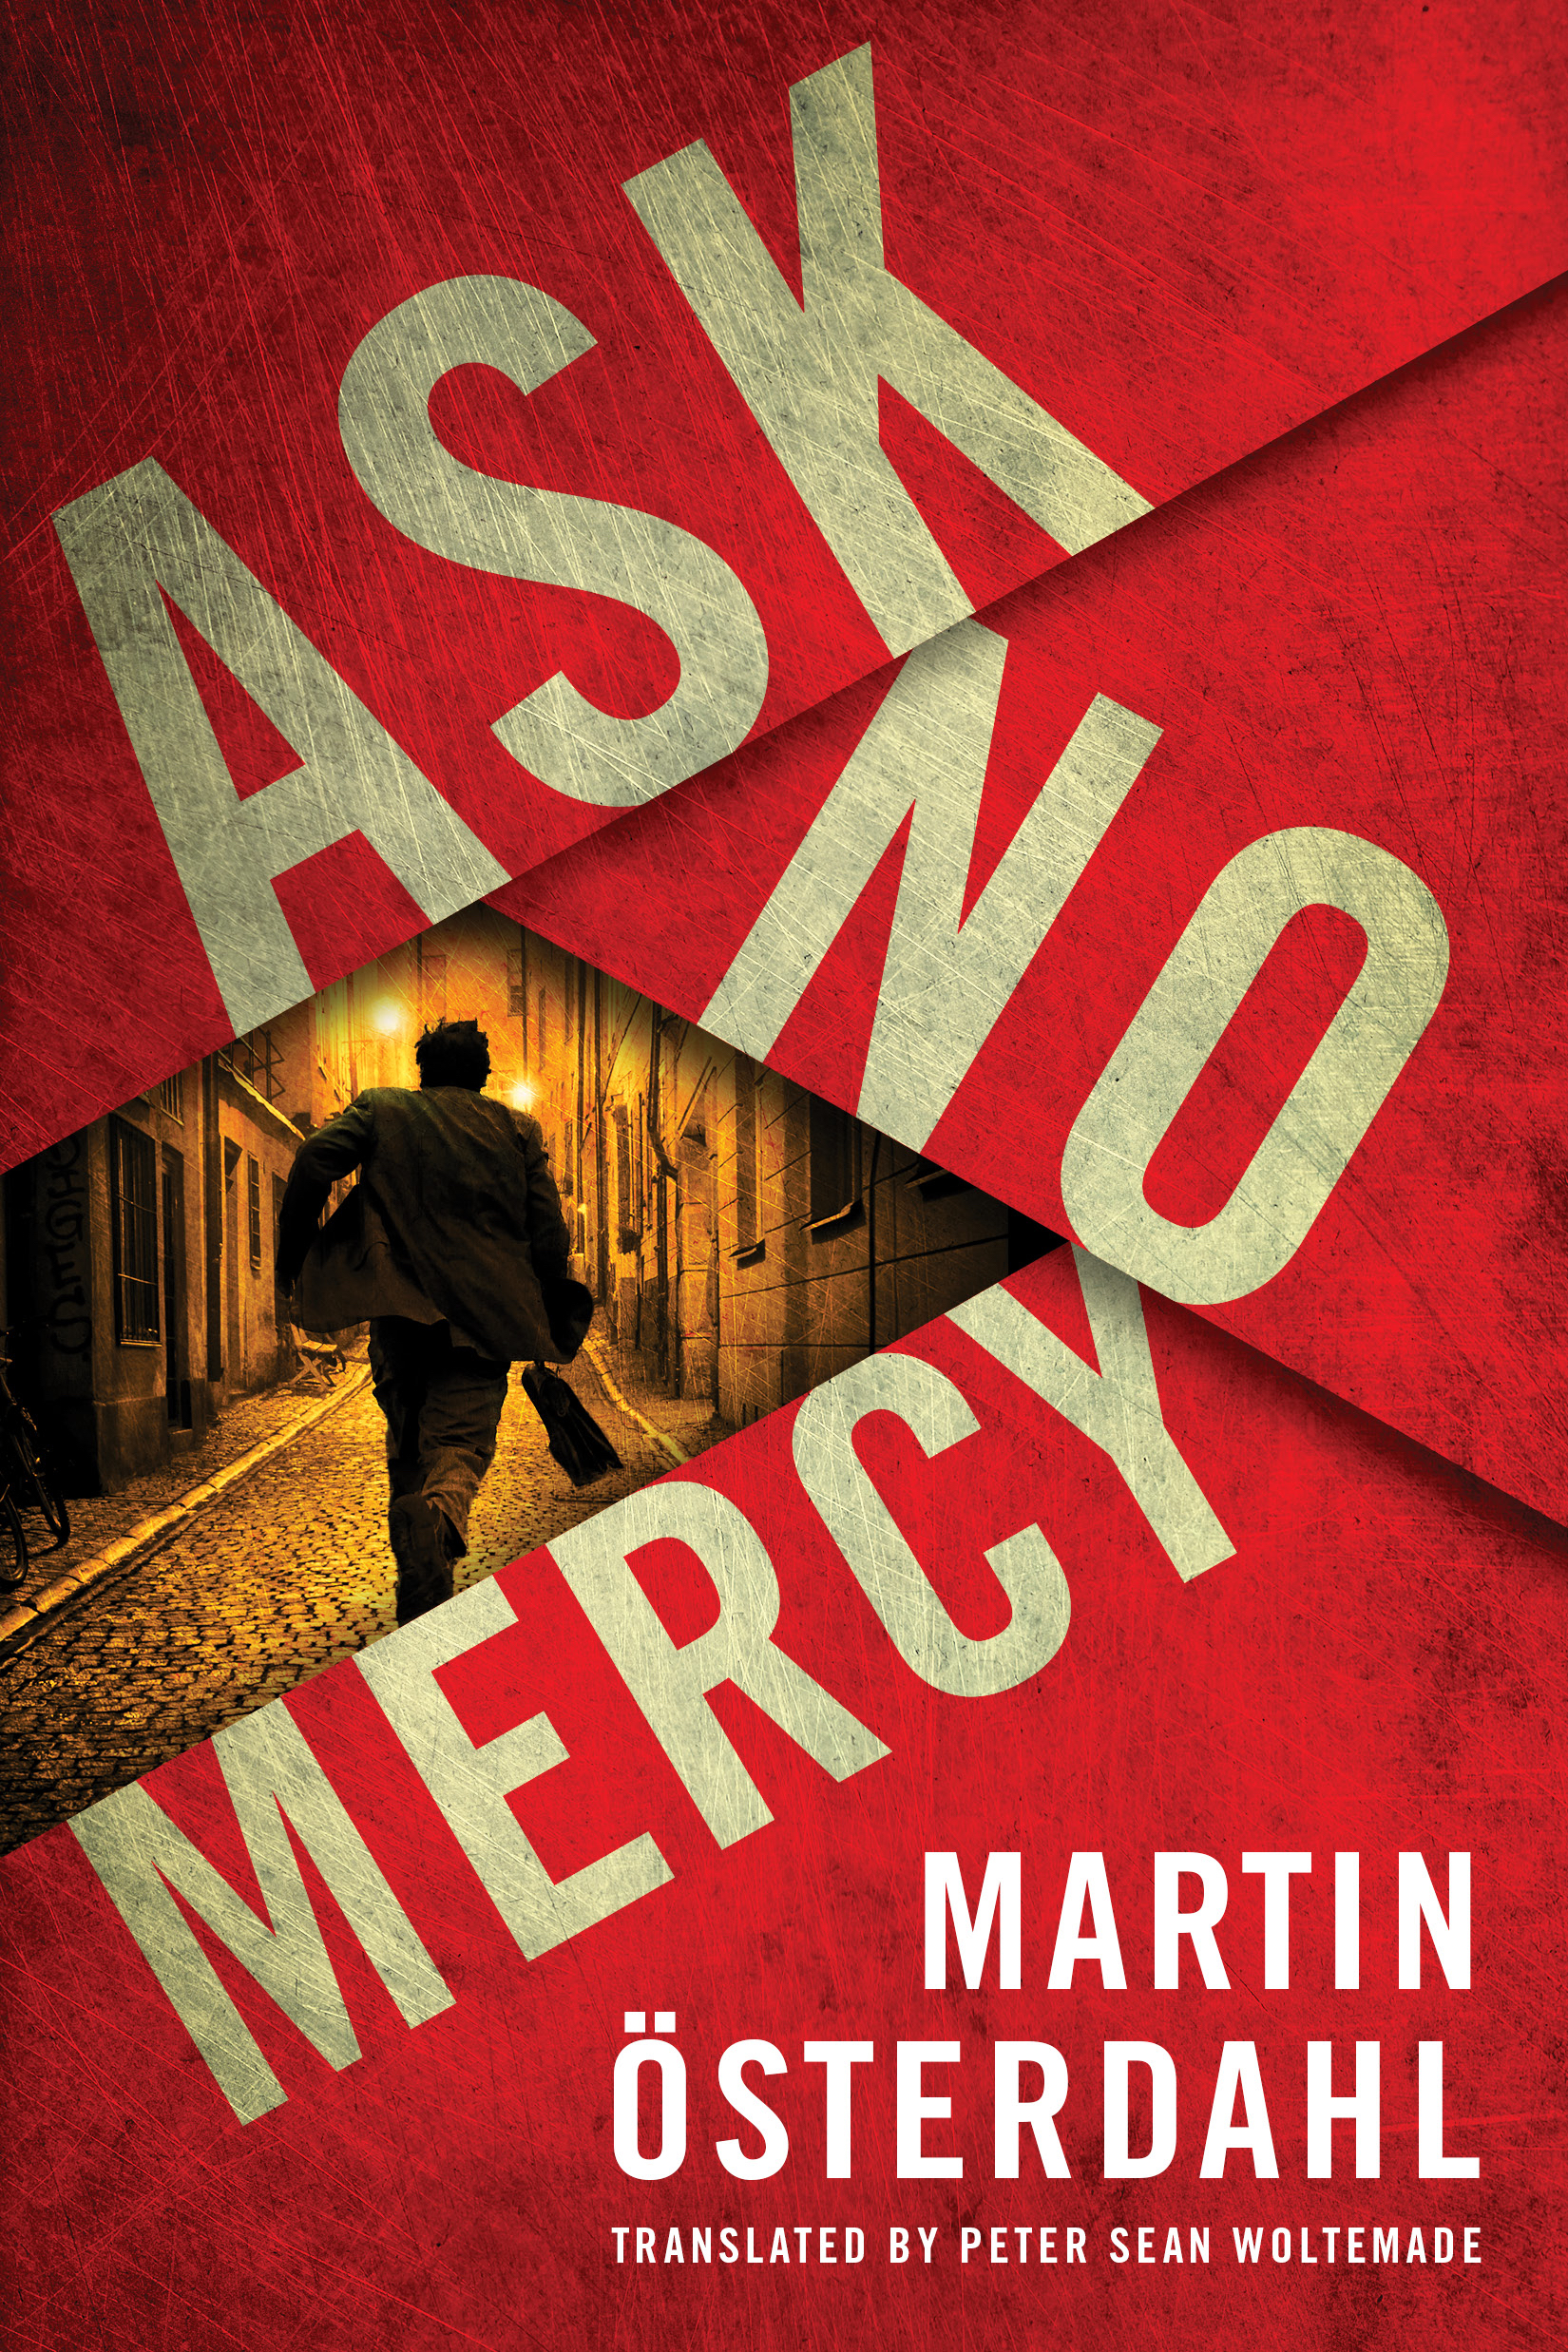 Cover image of ASK NO MERCY